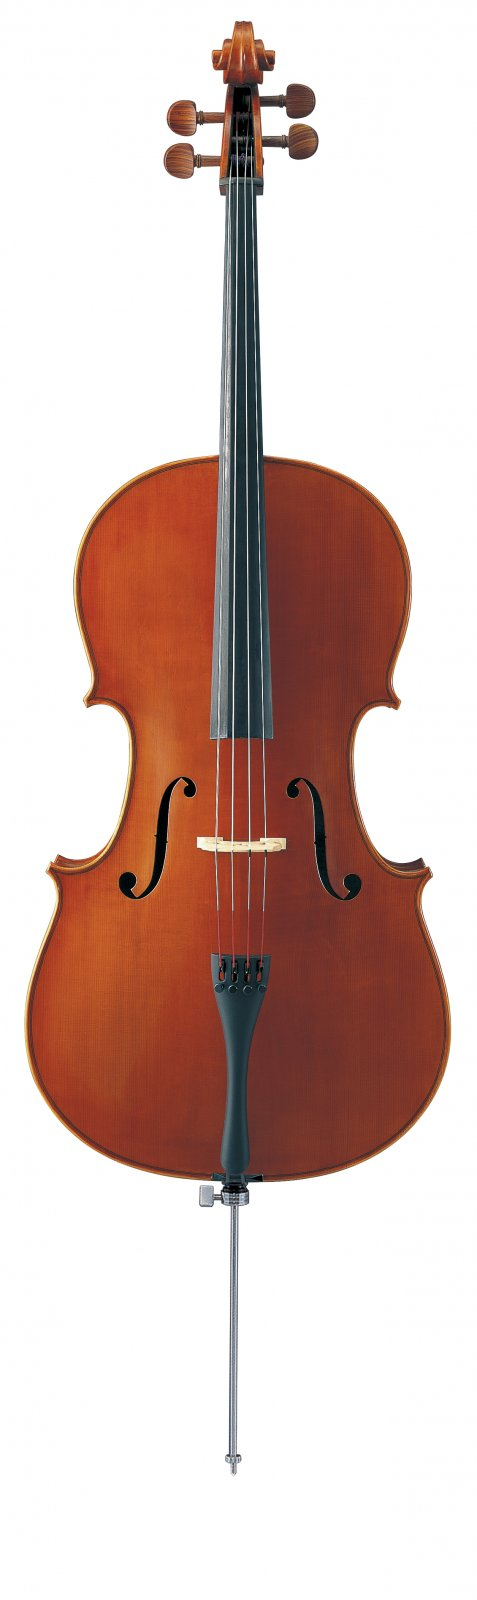 Yamaha Braviol Cello 1/2 AVC5-12S